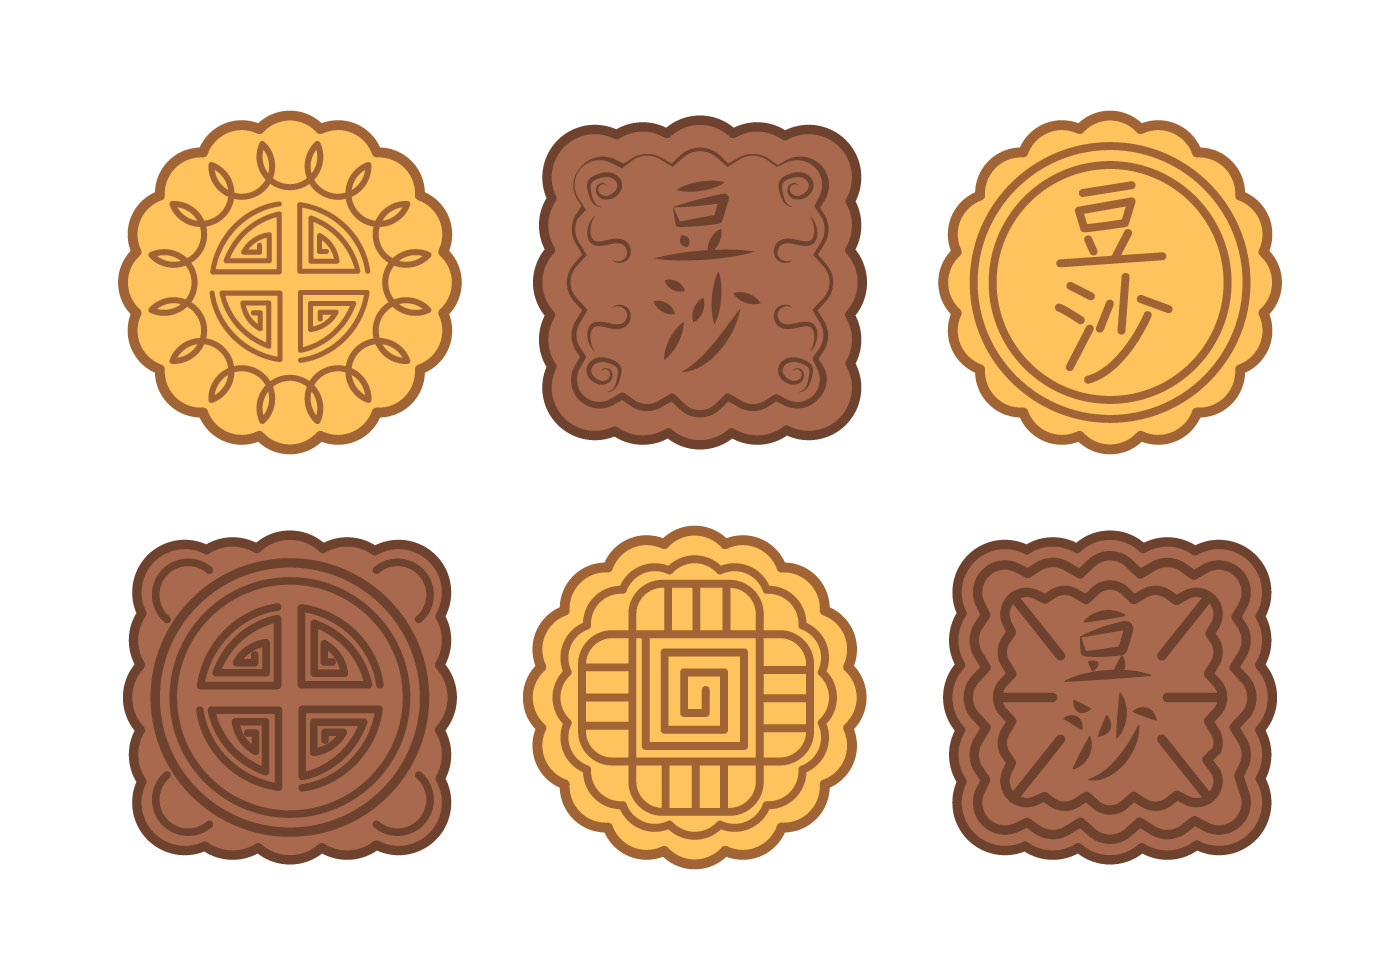 Moon Cake Vector - Download Free Vector Art, Stock ...